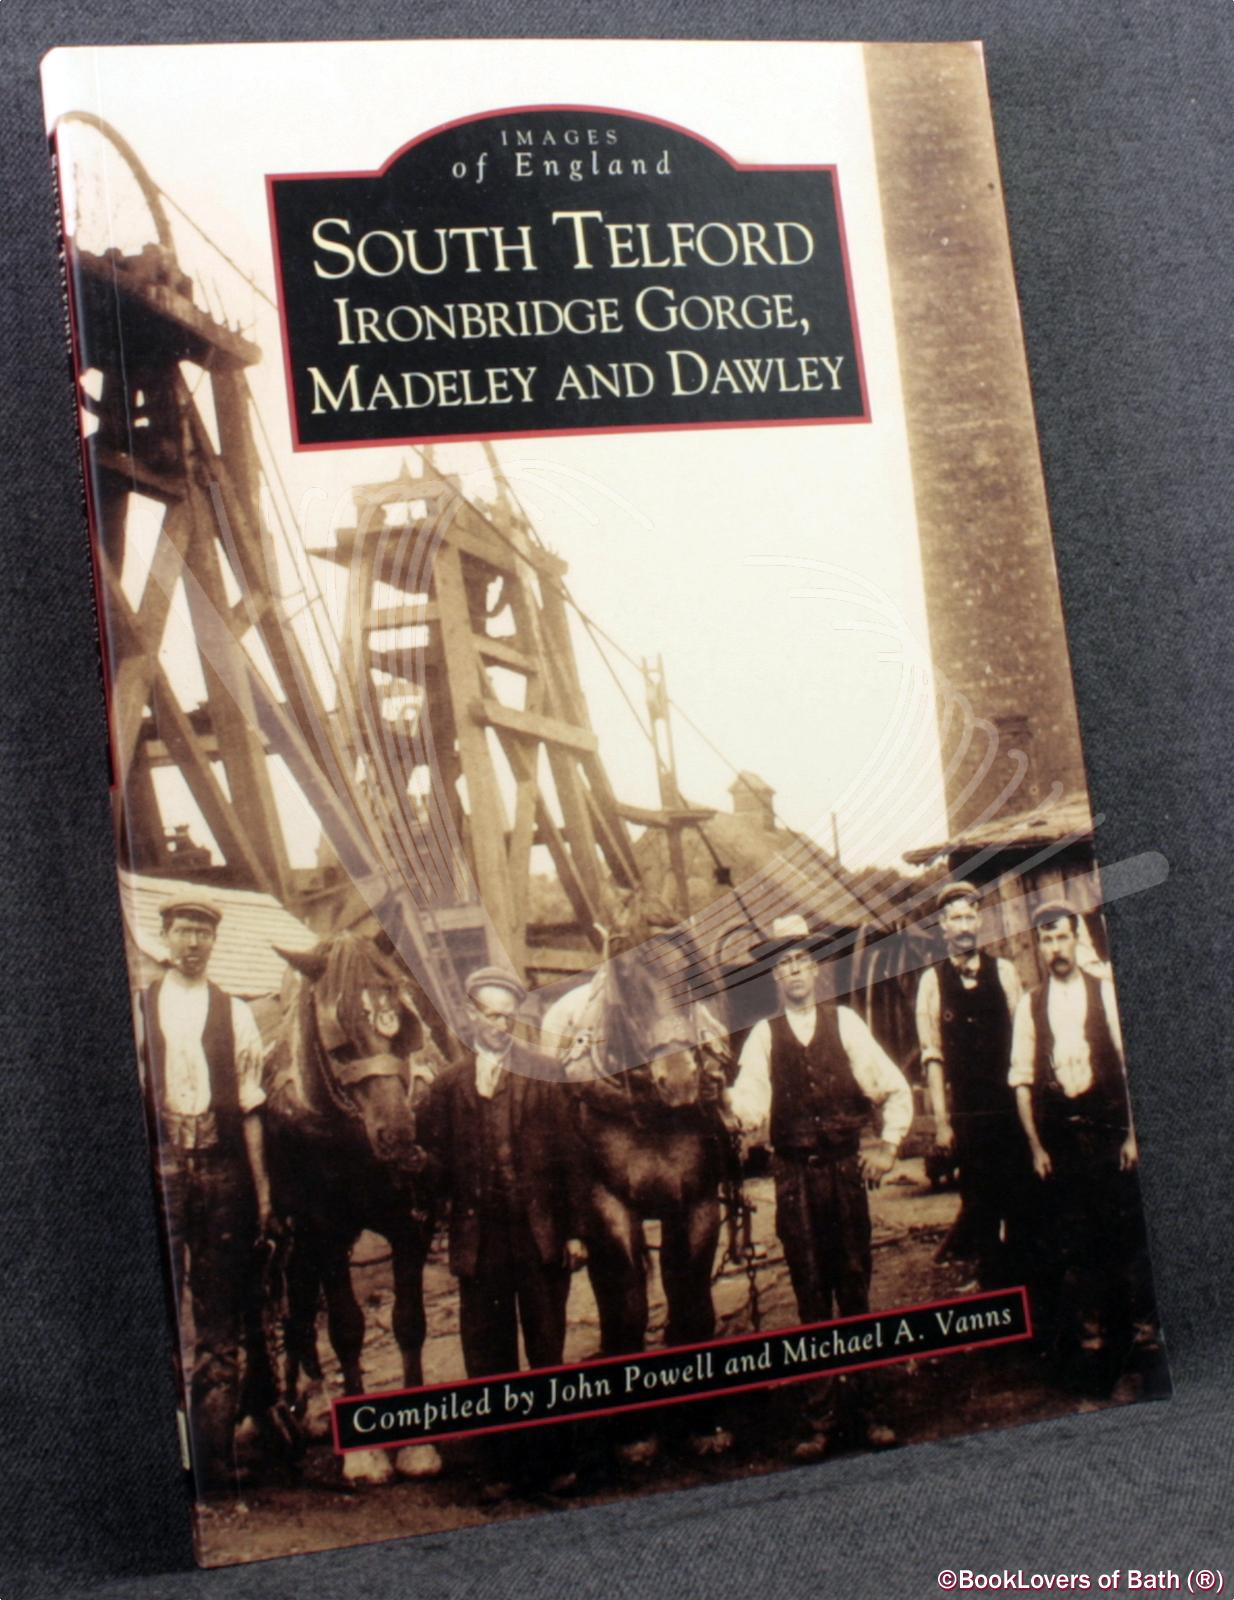 South Telford, Ironbridge Gorge, Madeley & Dawley - John Powell & Michael A. Vanns